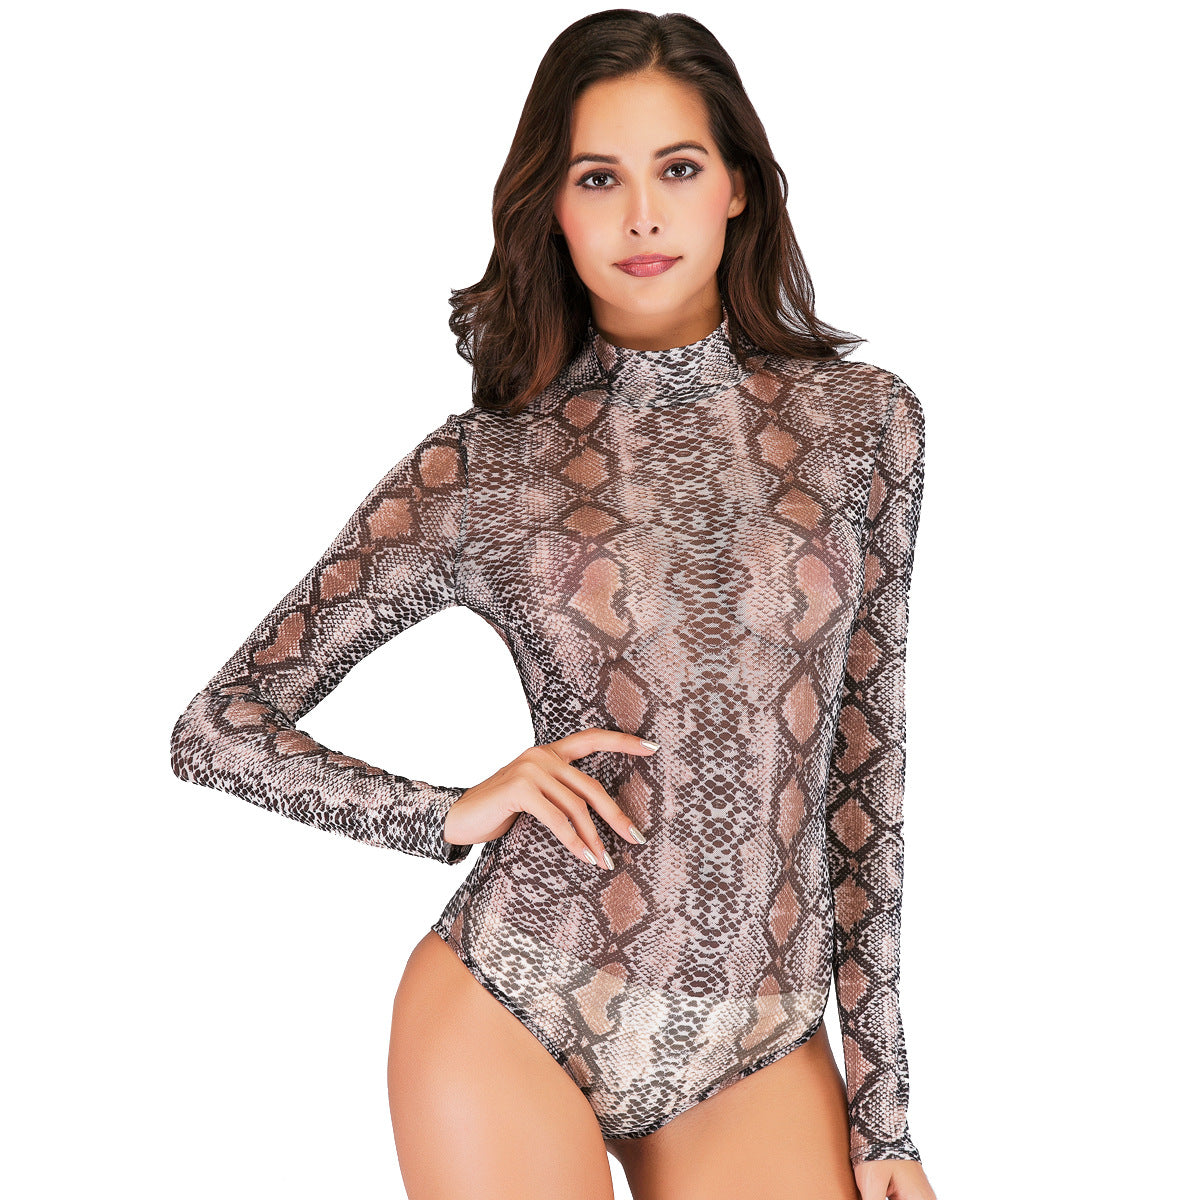 Snake mesh print long-sleeved jumpsuit female Slim sexy perspective nightclub dance bottoming shirt